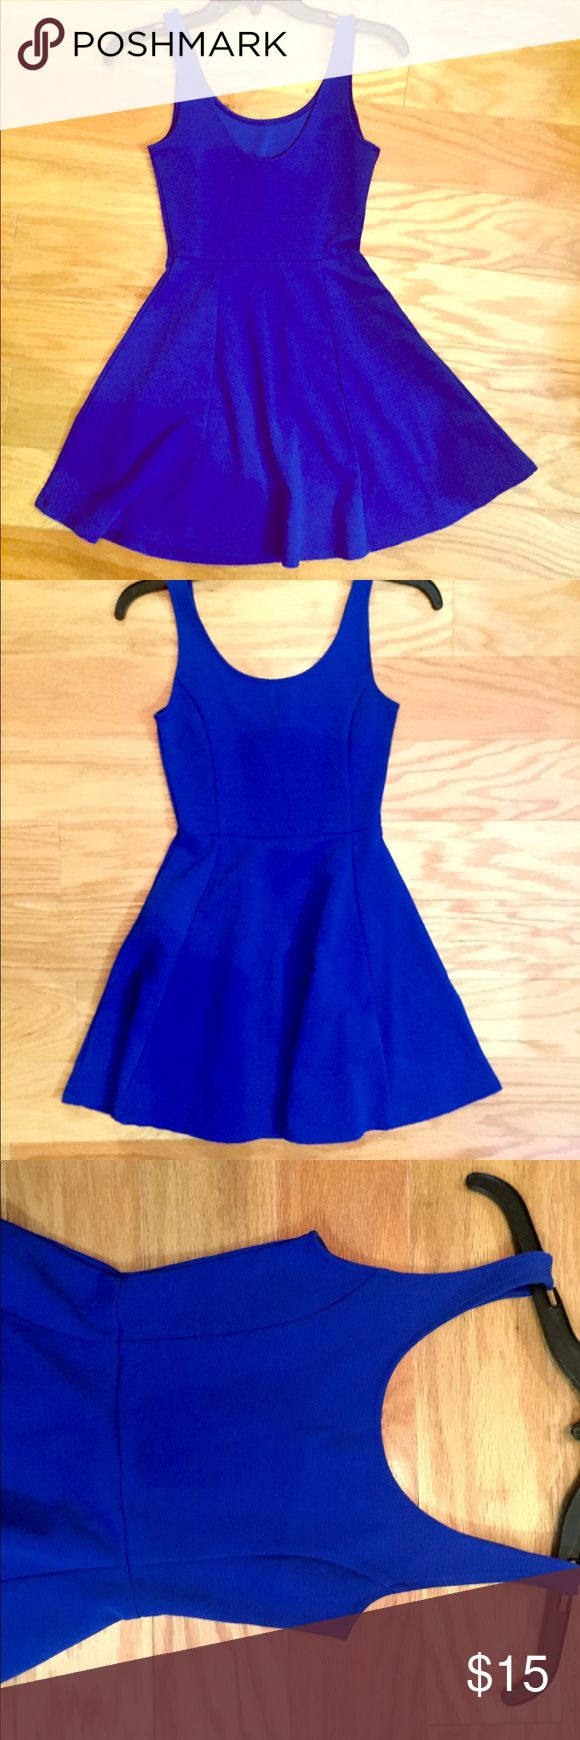 "H&M Royal Blue Skater Dress Great color! Lightly worn, no flaws. Material is textured and gives for a more ""quality"" look. Flattering fit. Tag says size 2. Small. Not really short enough to be a mini dress, its shorter but a good length. Last photo is of the back, it drops down a little bit lower than the neckline does in front Divided Dresses Mini"